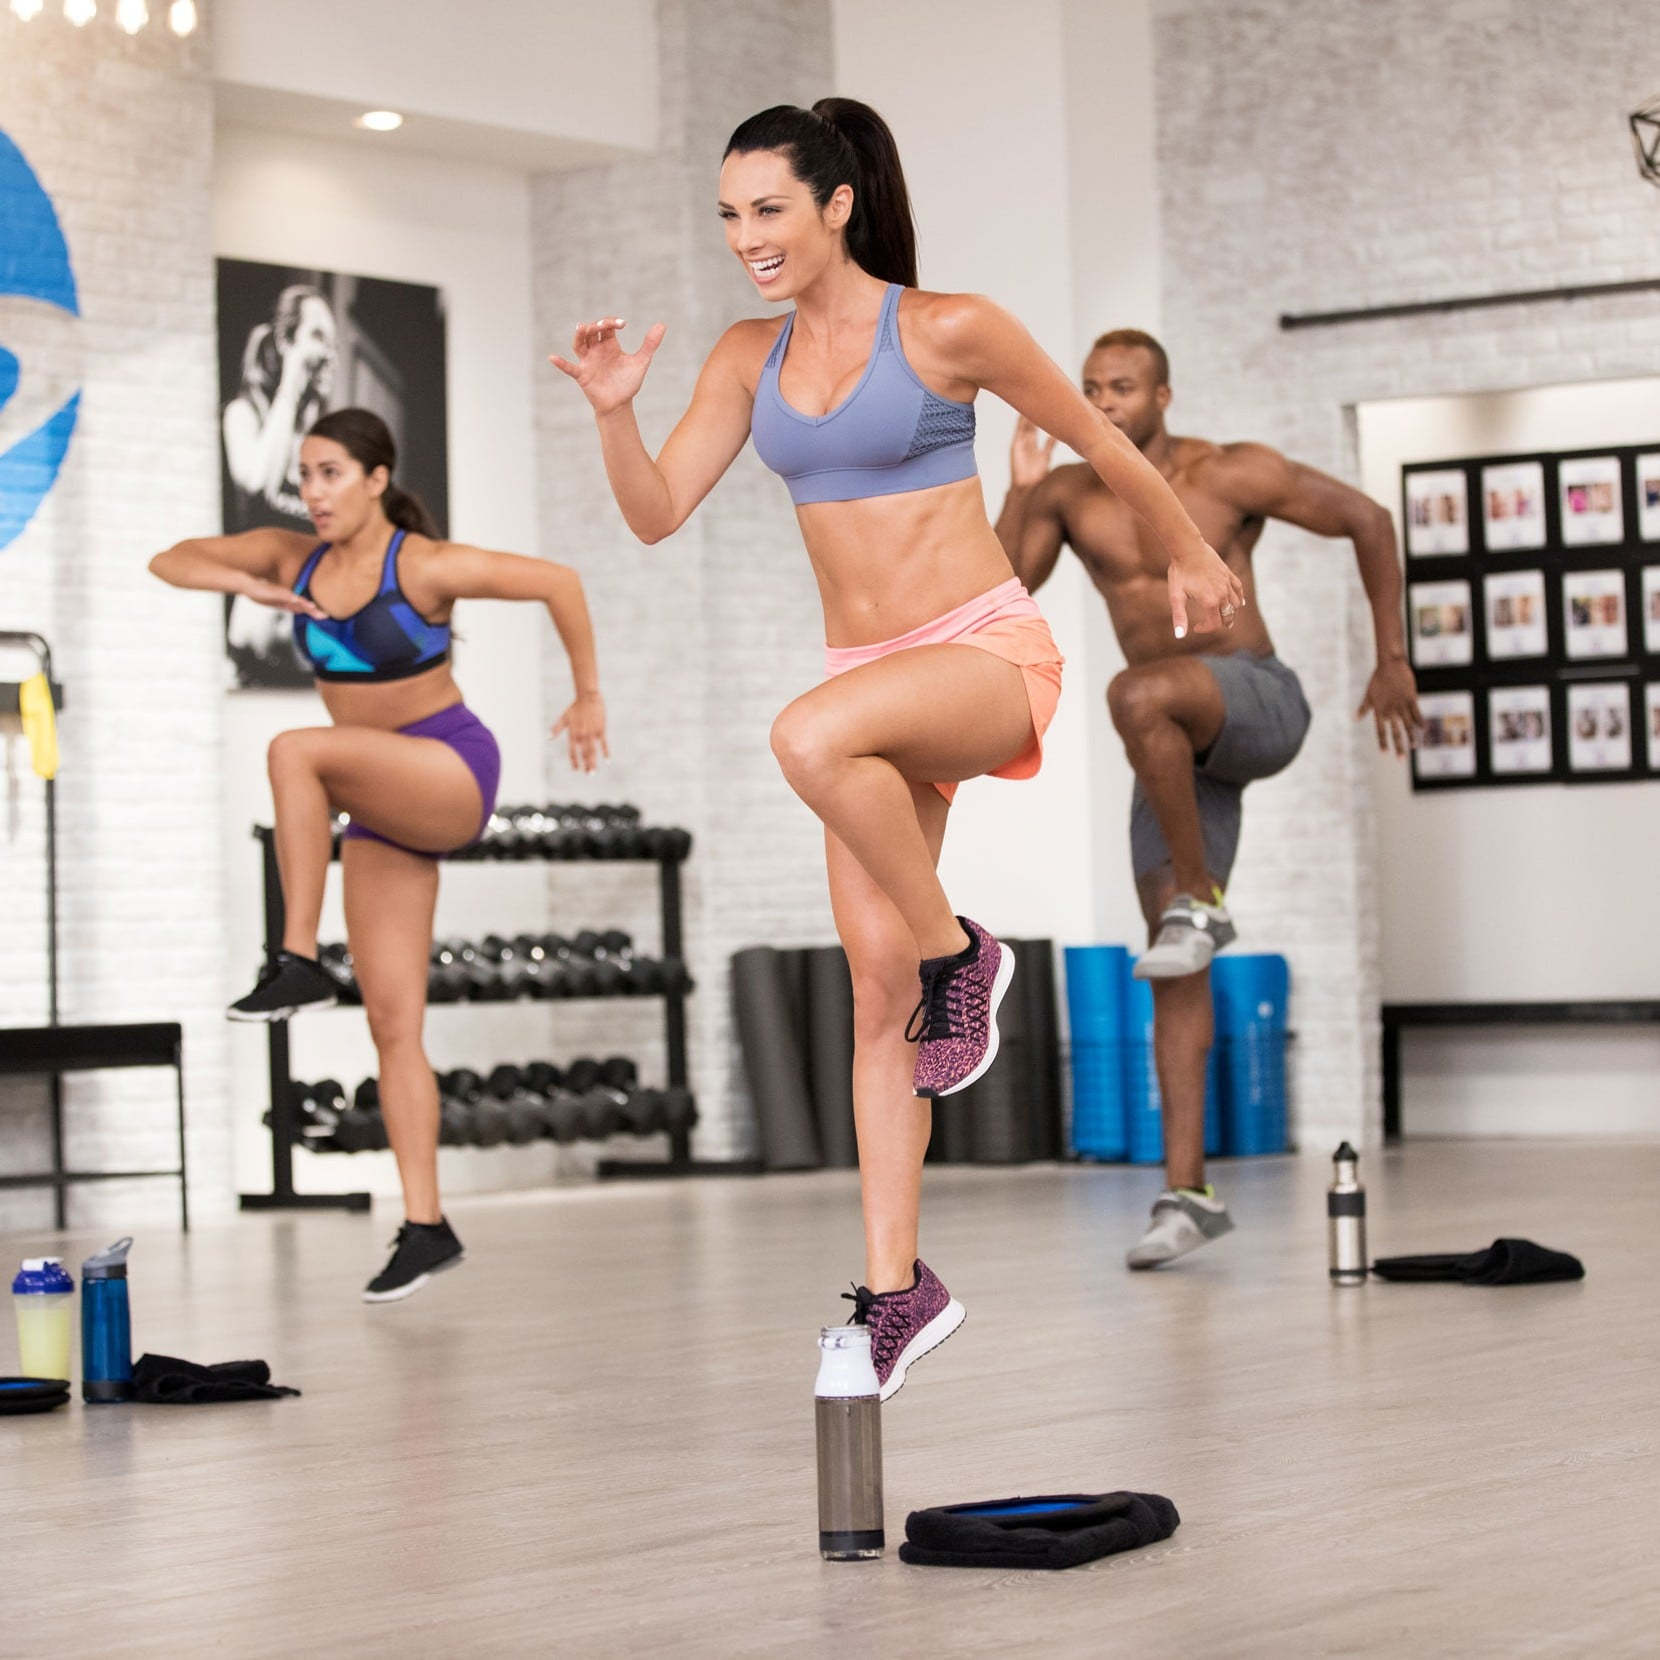 80 Day Obsession what are 80 day obsession workouts like?   popsugar fitness uk